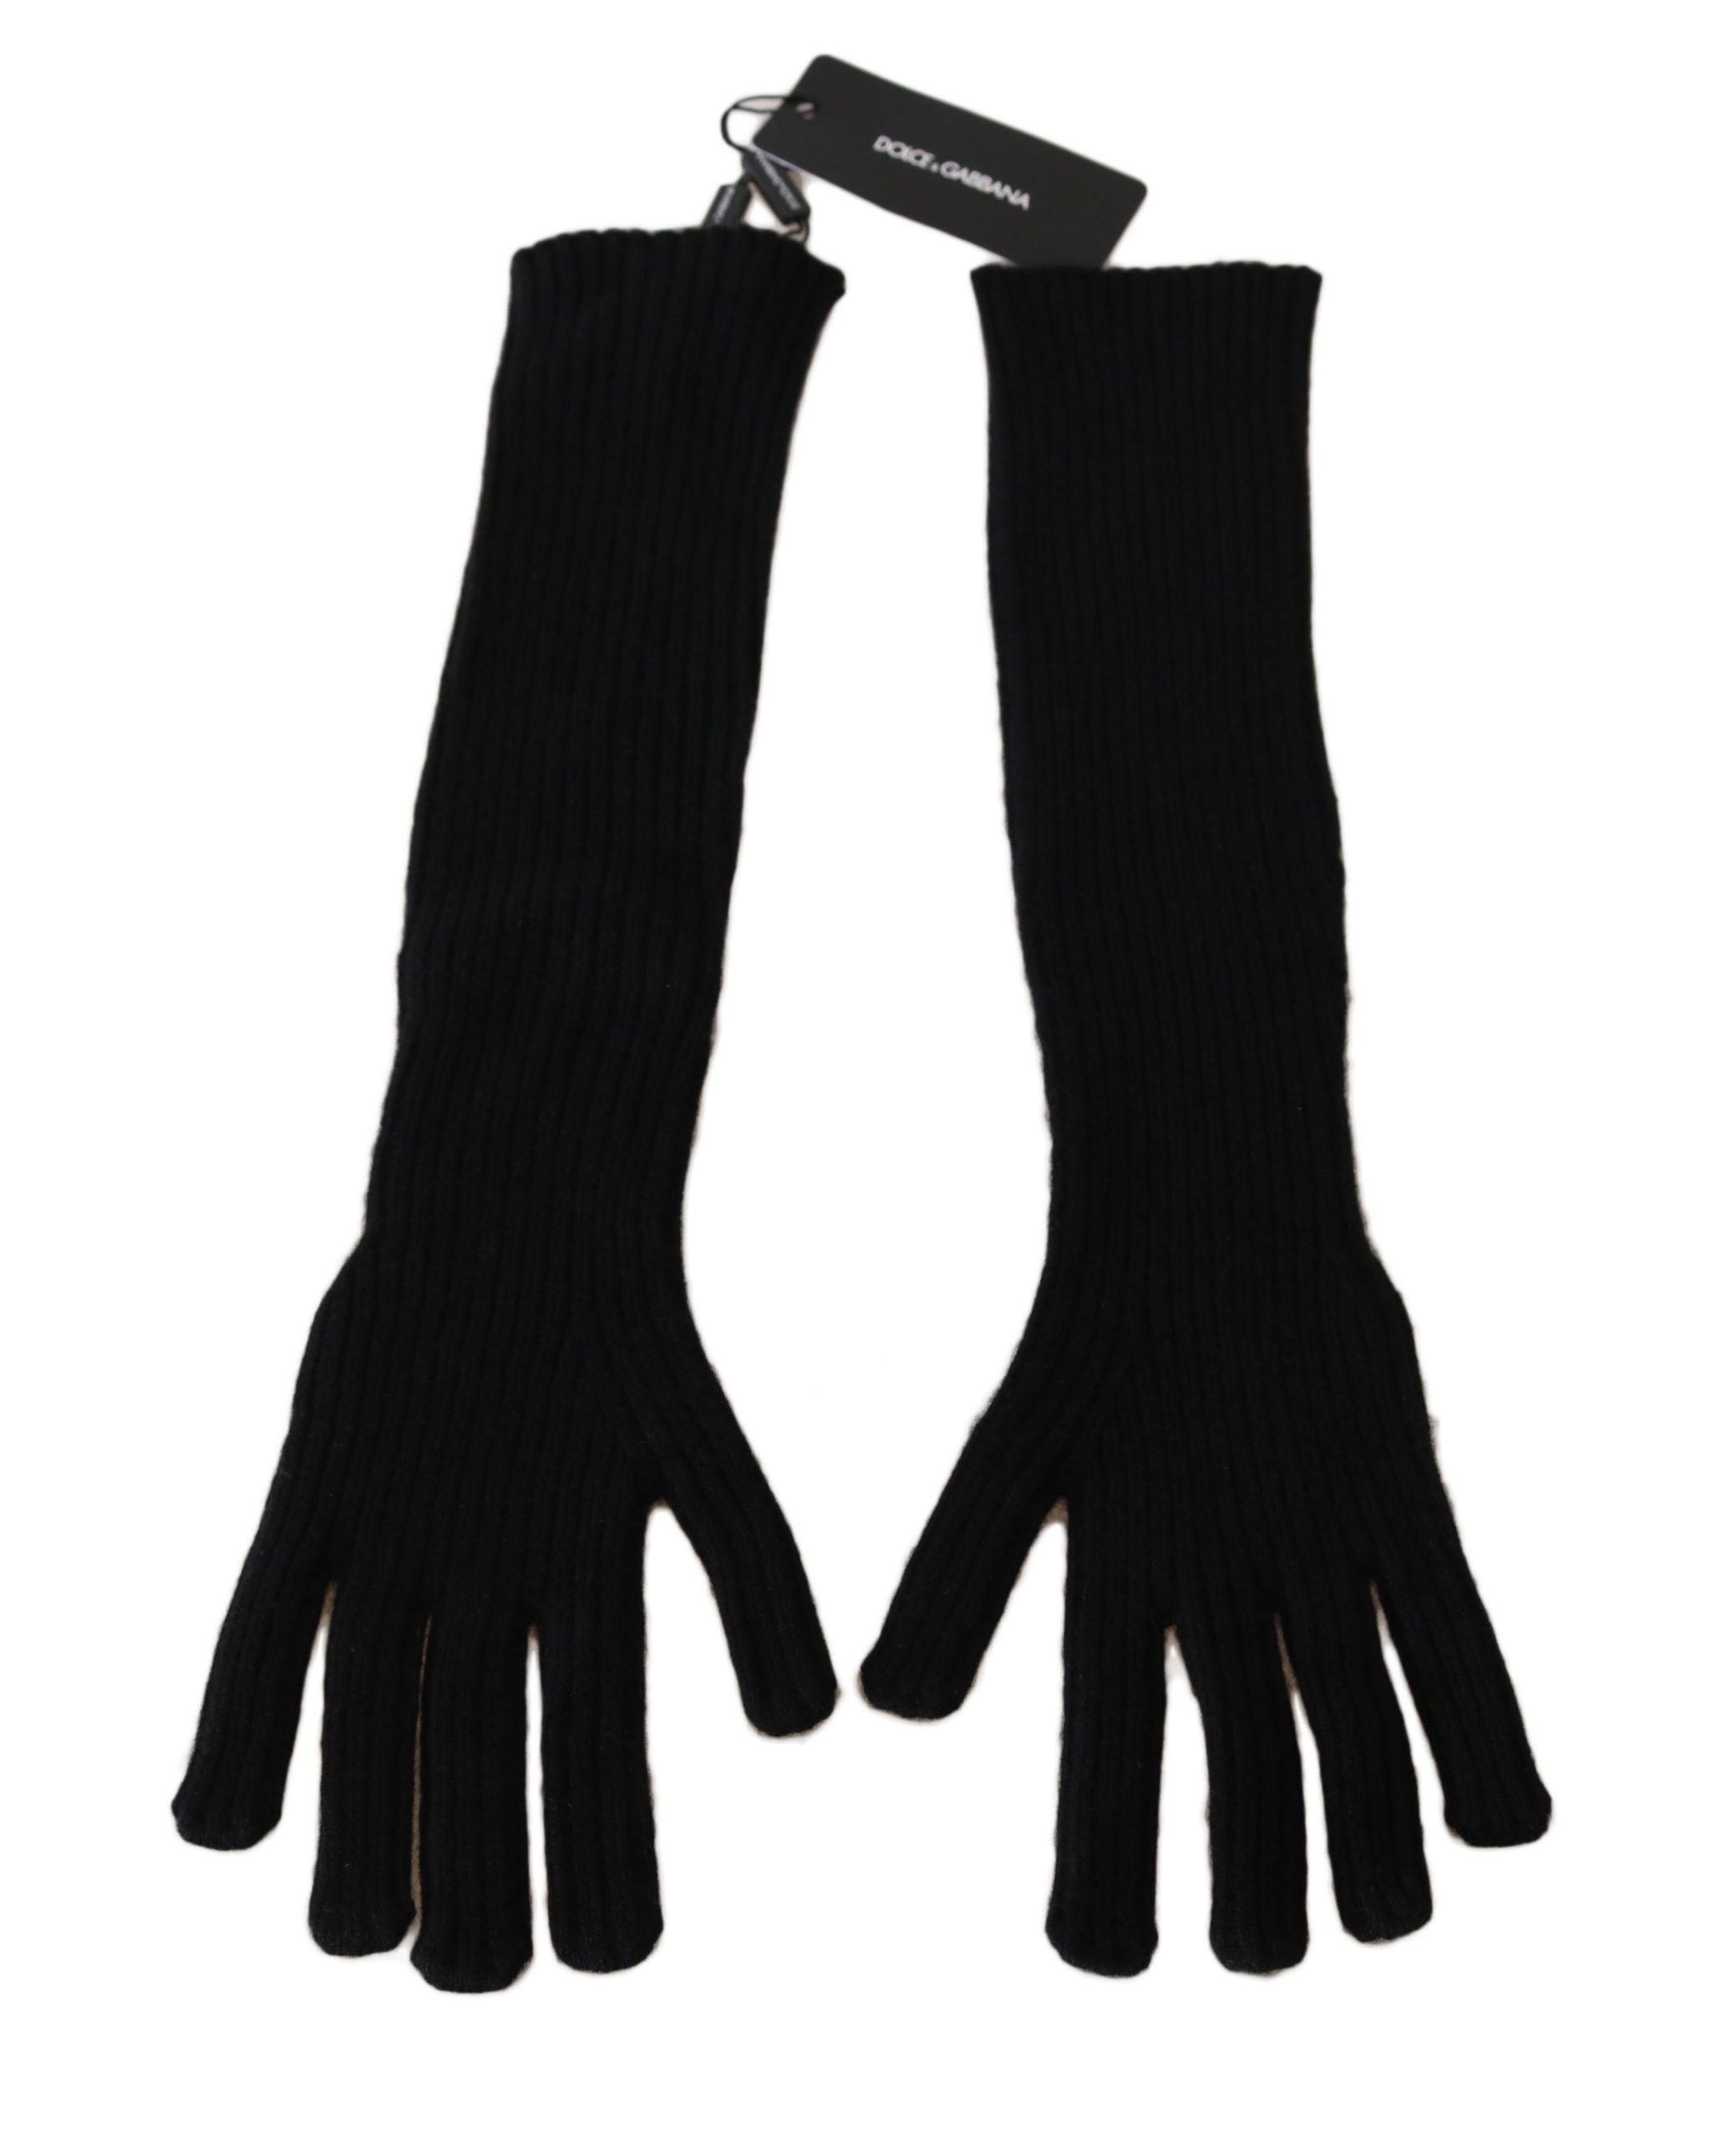 Dolce & Gabbana Women's Cashmere Knitted Elbow Length Gloves Black LB252 - 9,5|L